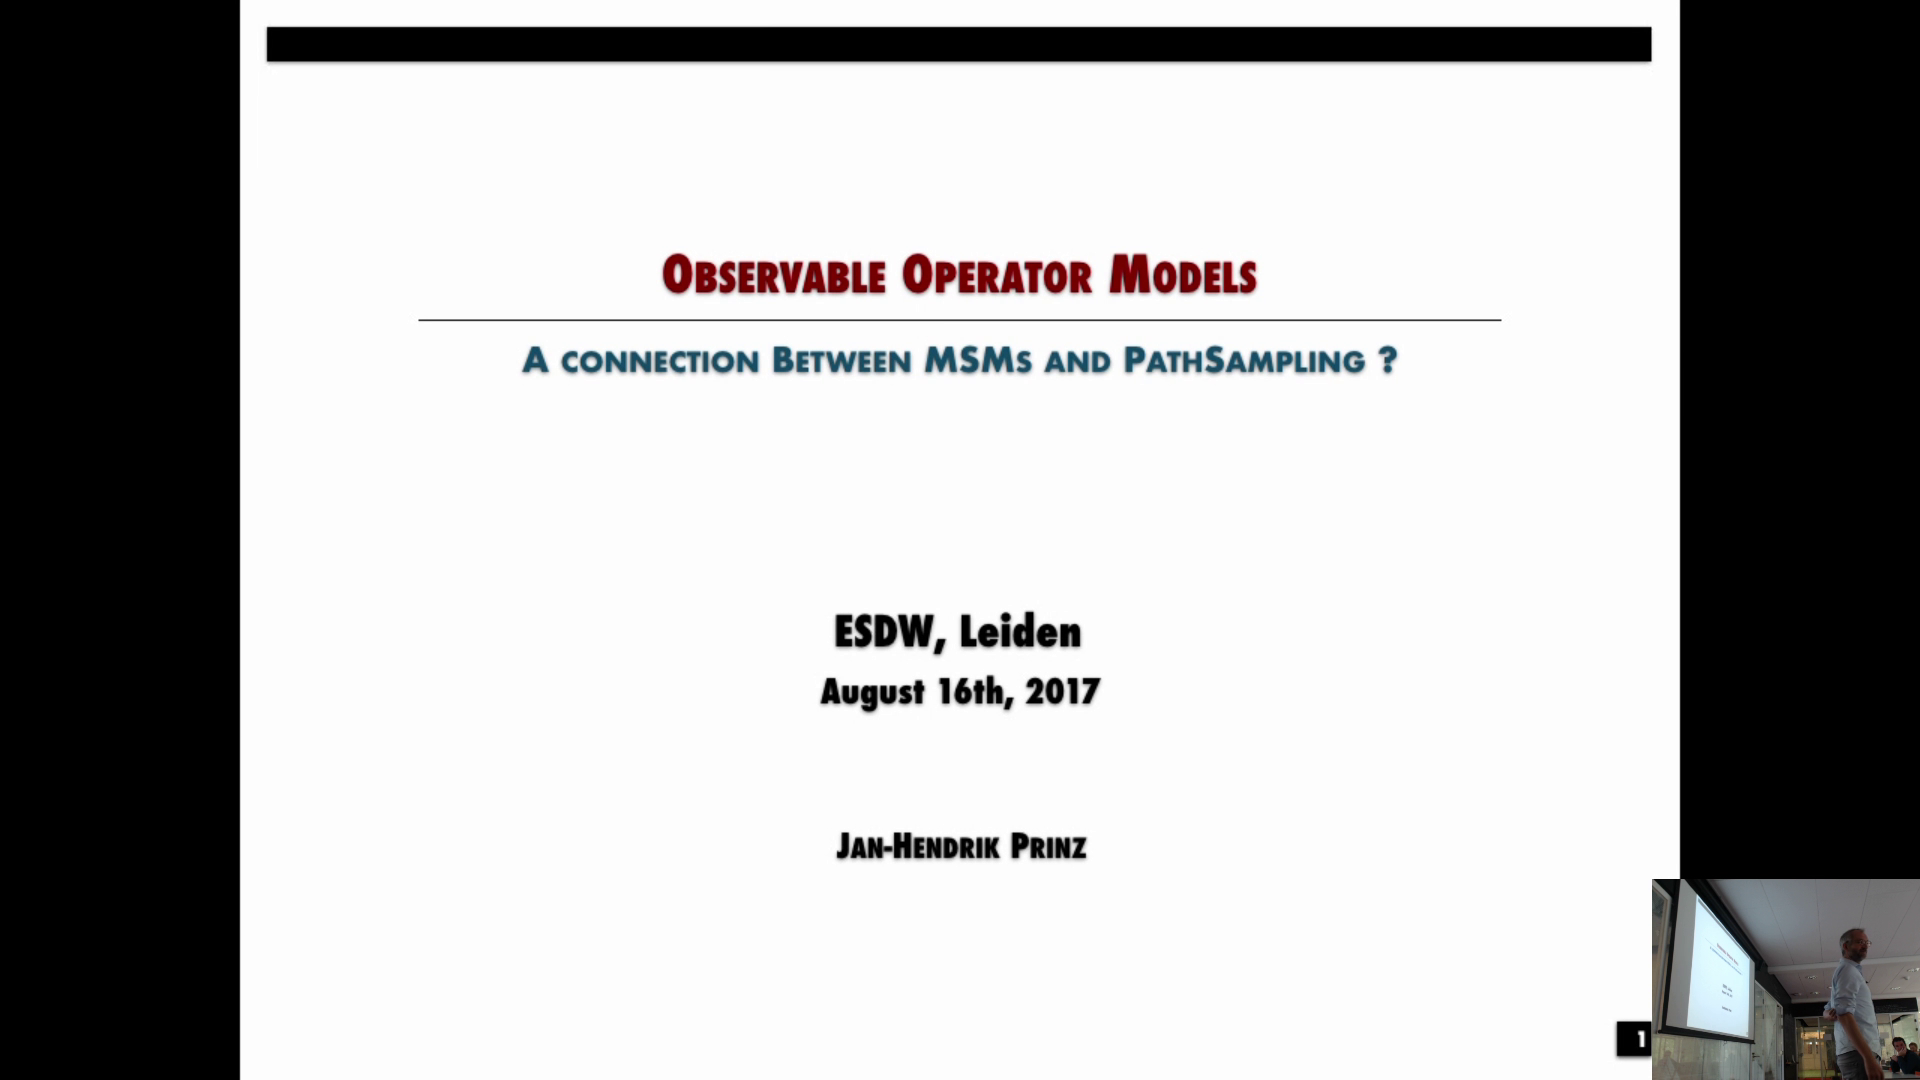 Thumbnail of Observable operator models: How to connect Markov state models and path sampling